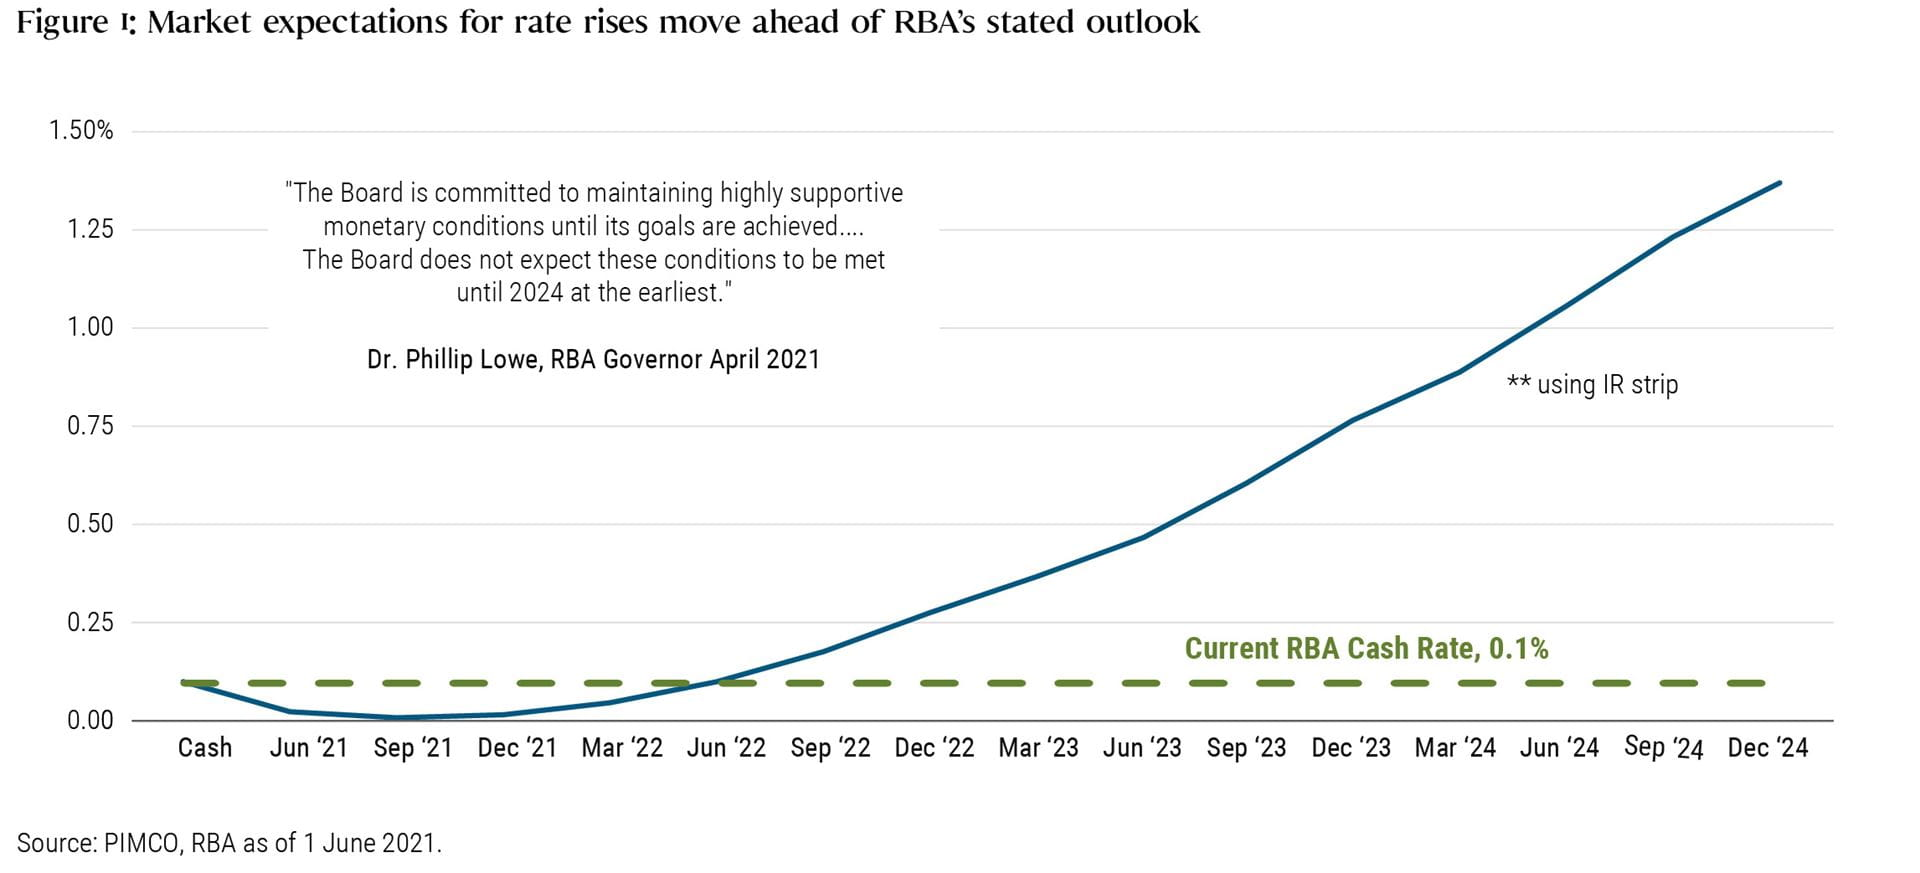 Figure 1: Market expectations for rate rises move ahead of RBA's stated outlook